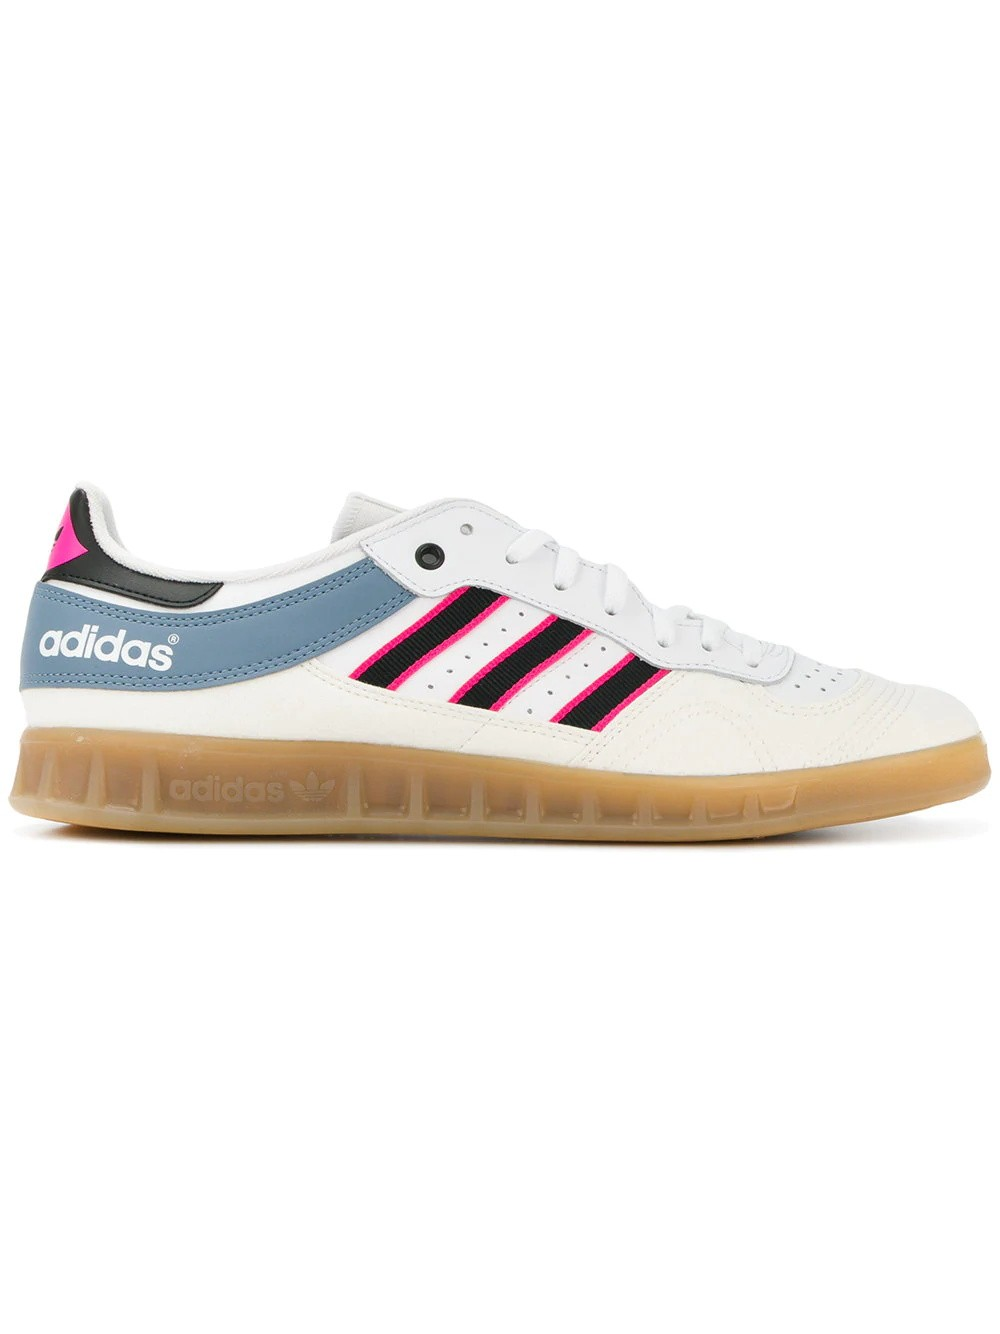 Adidas Originals Handball Top Homme Blanche/Blanche/Rose CQ2313